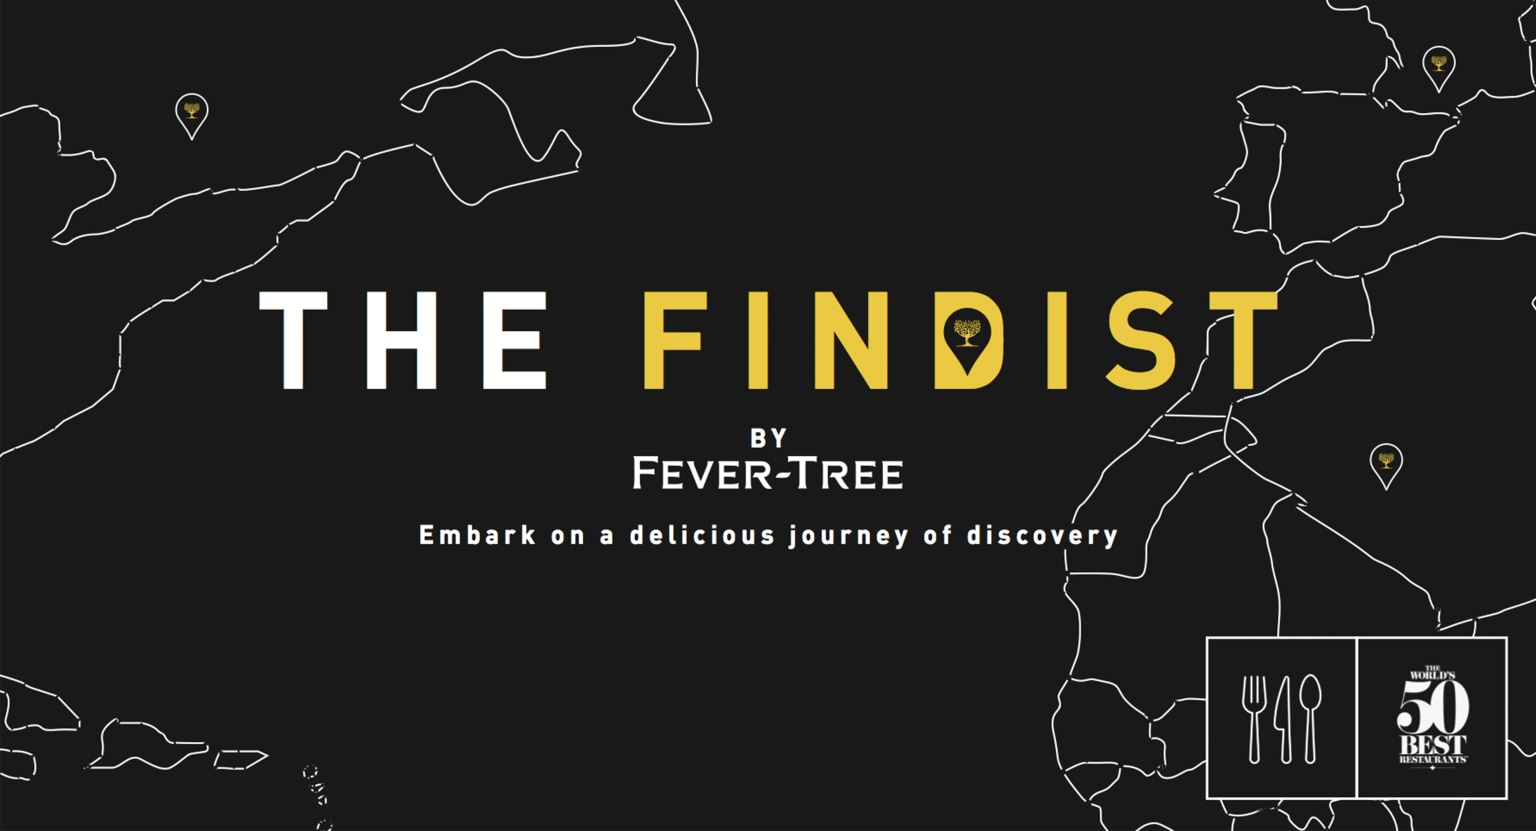 Fever-Tree – The Findist